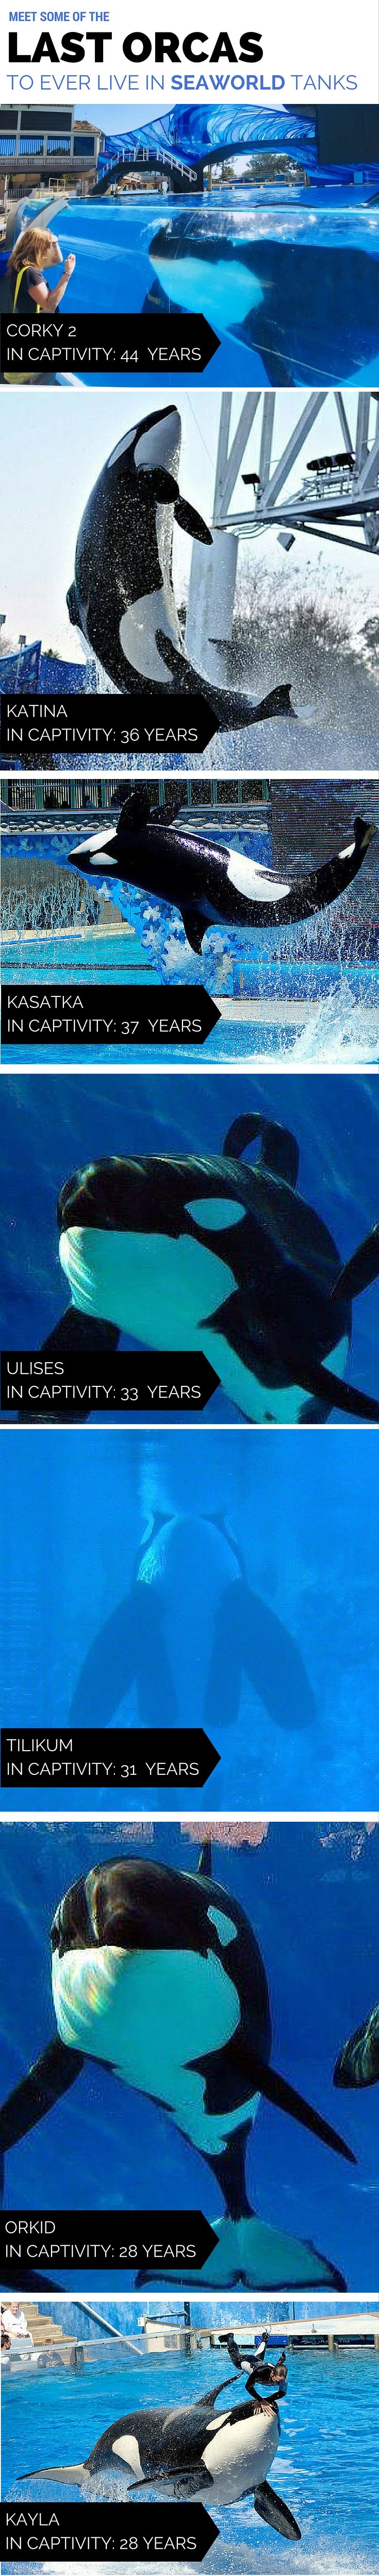 After years of controversy, SeaWorld announced that they're ending their captive breeding program - for good. Meet some of the last orcas to ever live in Seaworld tanks.